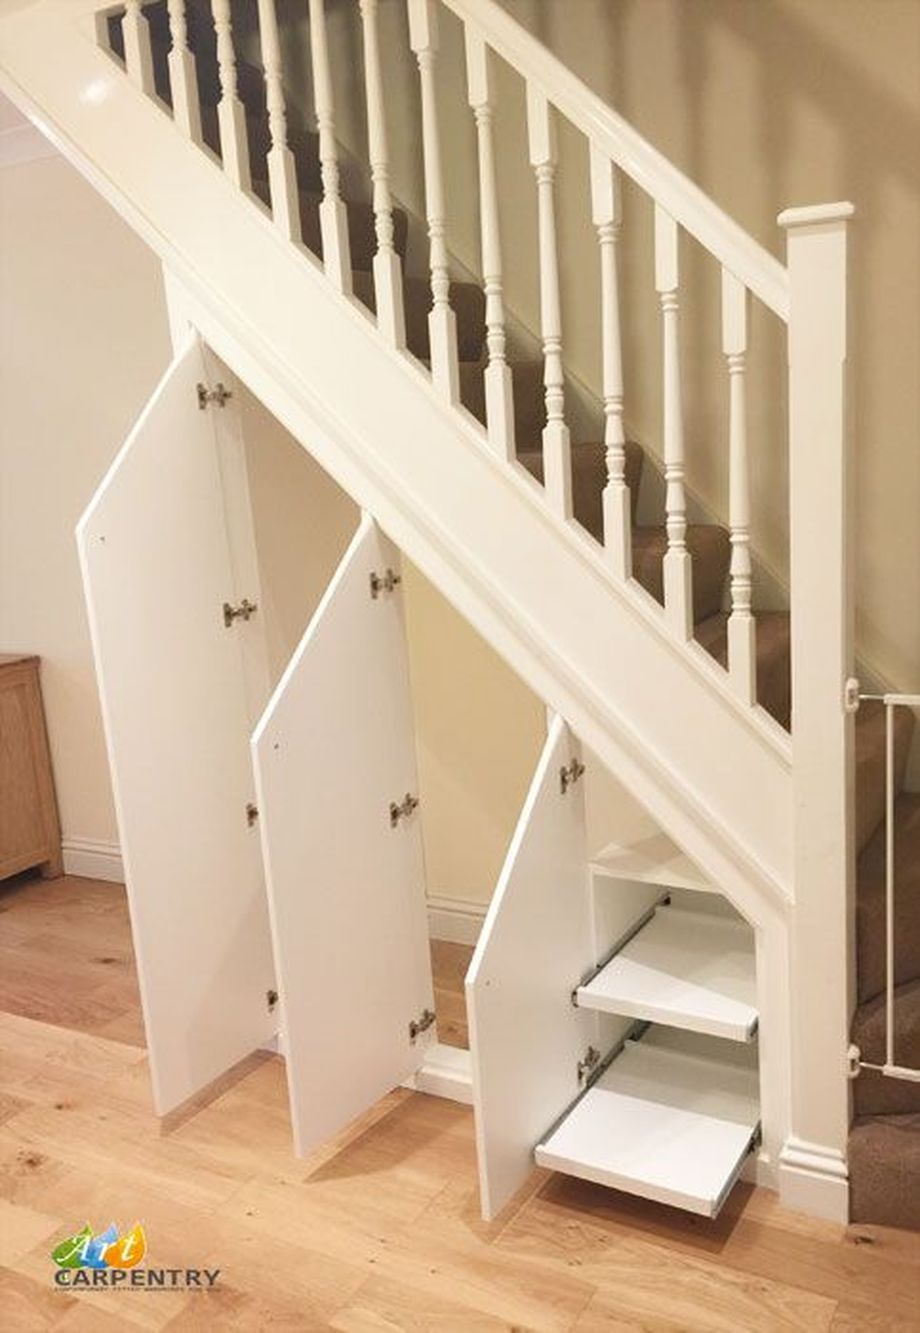 Awesome Cool Ideas To Make Storage Under Stairs 1 Under Stairs Cupboard Under Stairs Cupboard Storage Staircase Storage